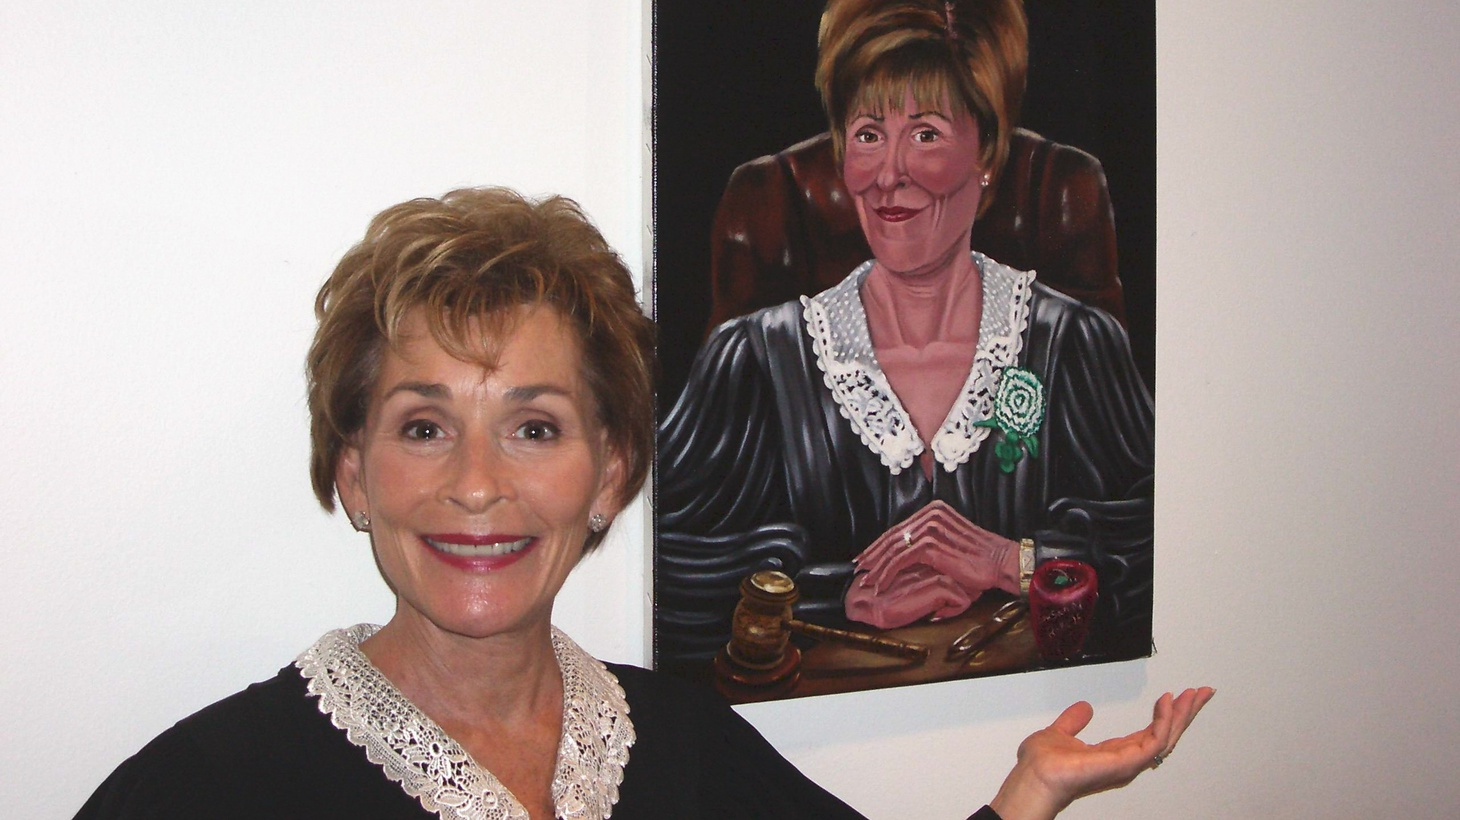 Judge Judy with a painting of herself.